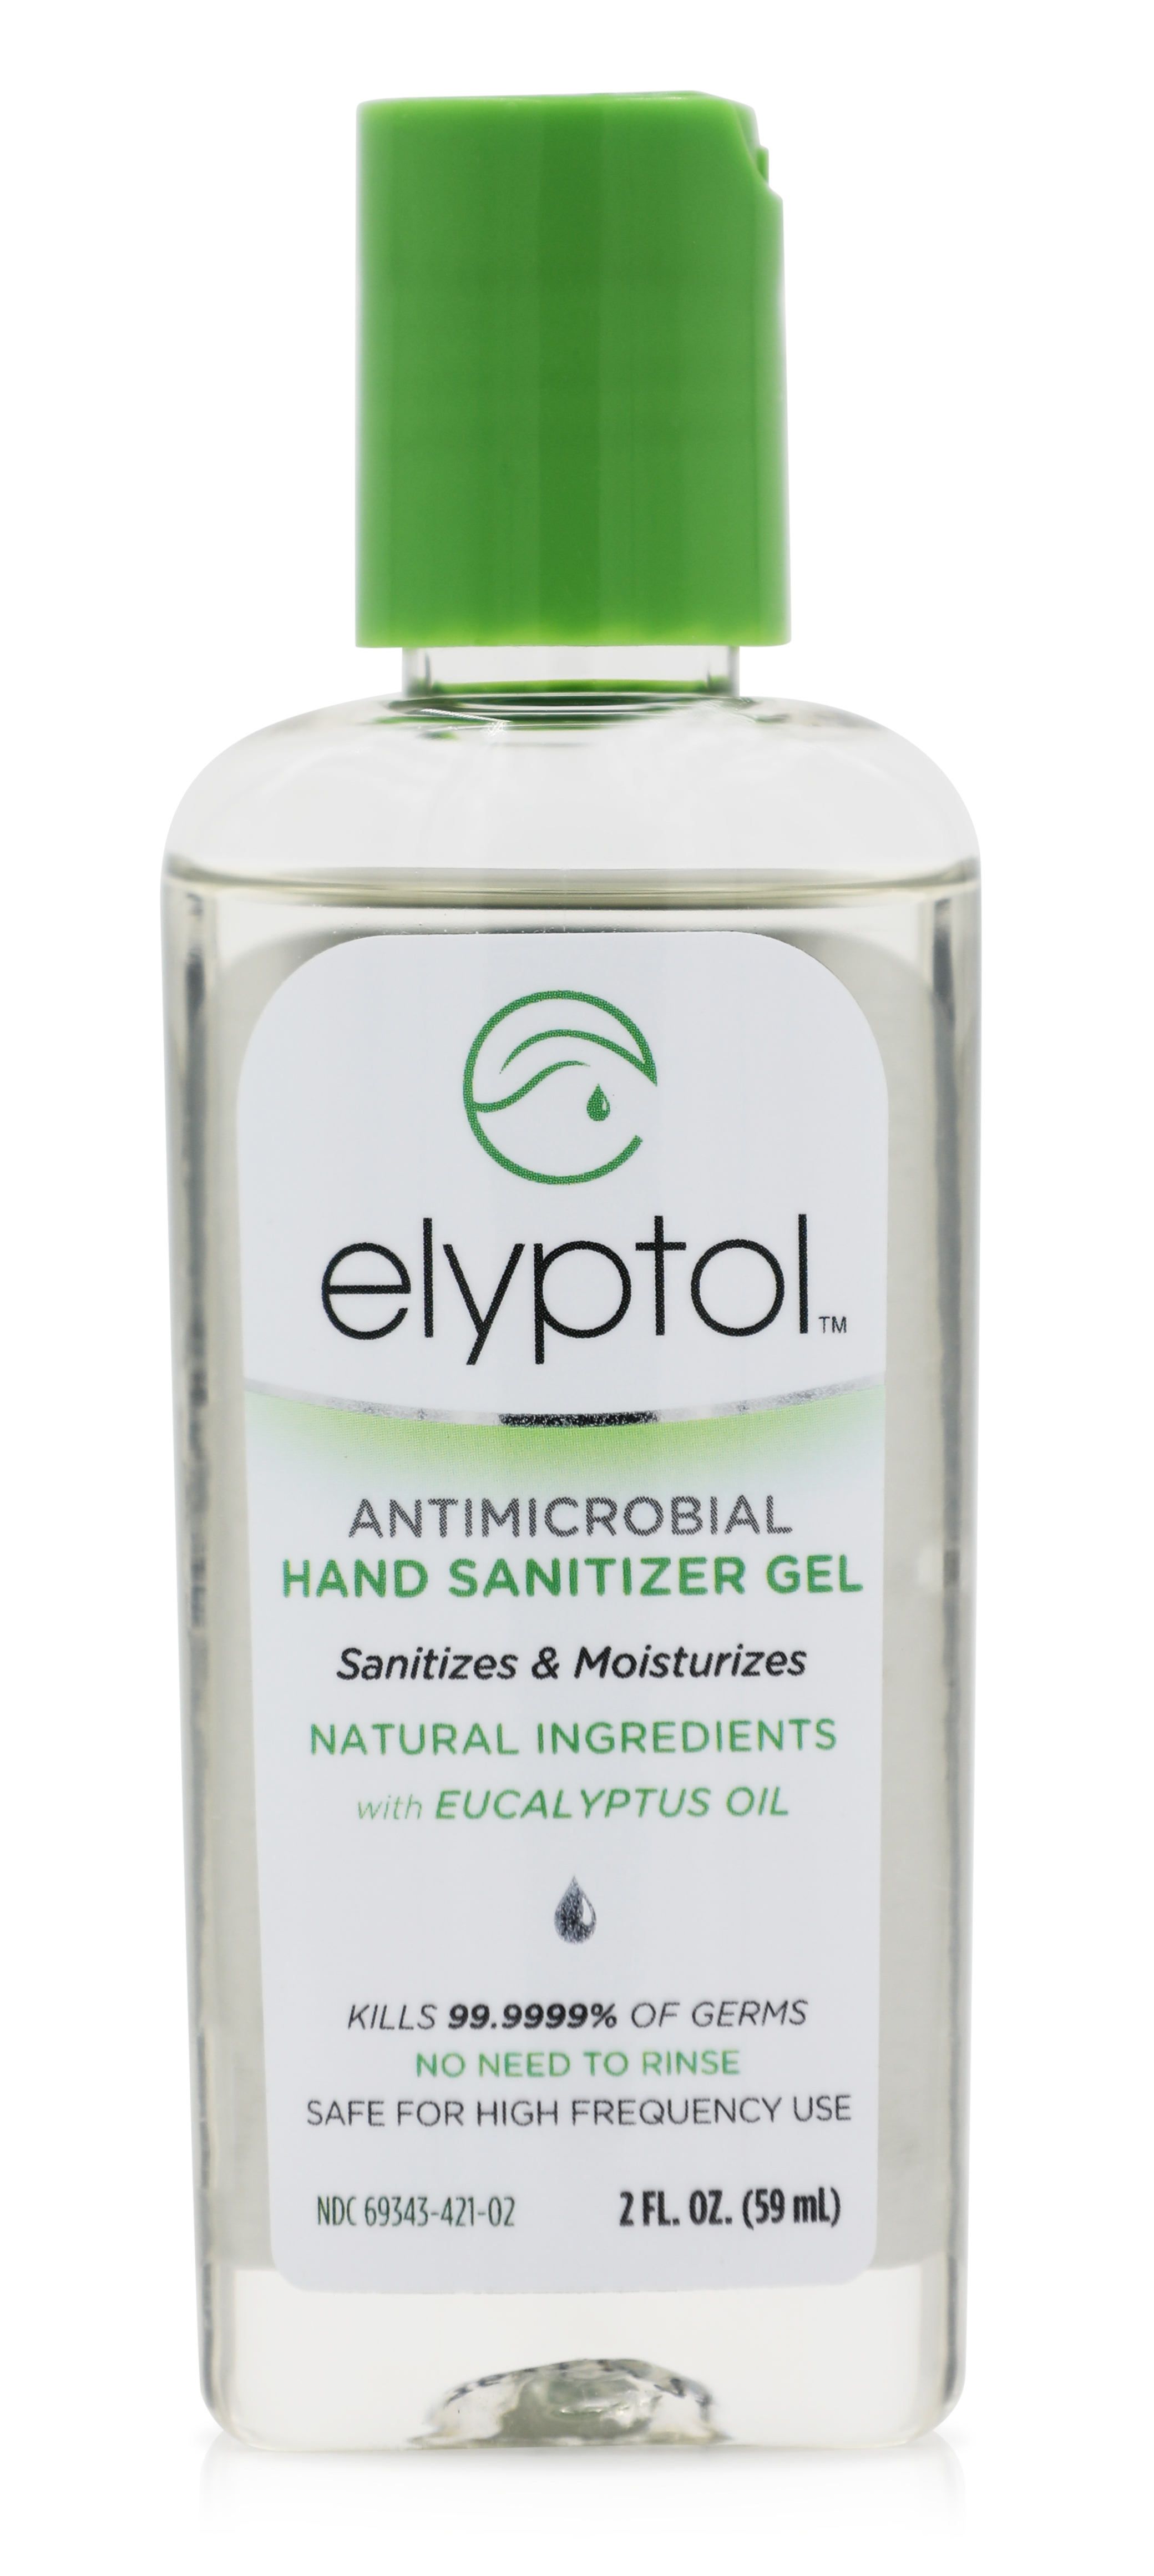 Antimicrobial Hand Sanitizer Gel The Natural Products Brands